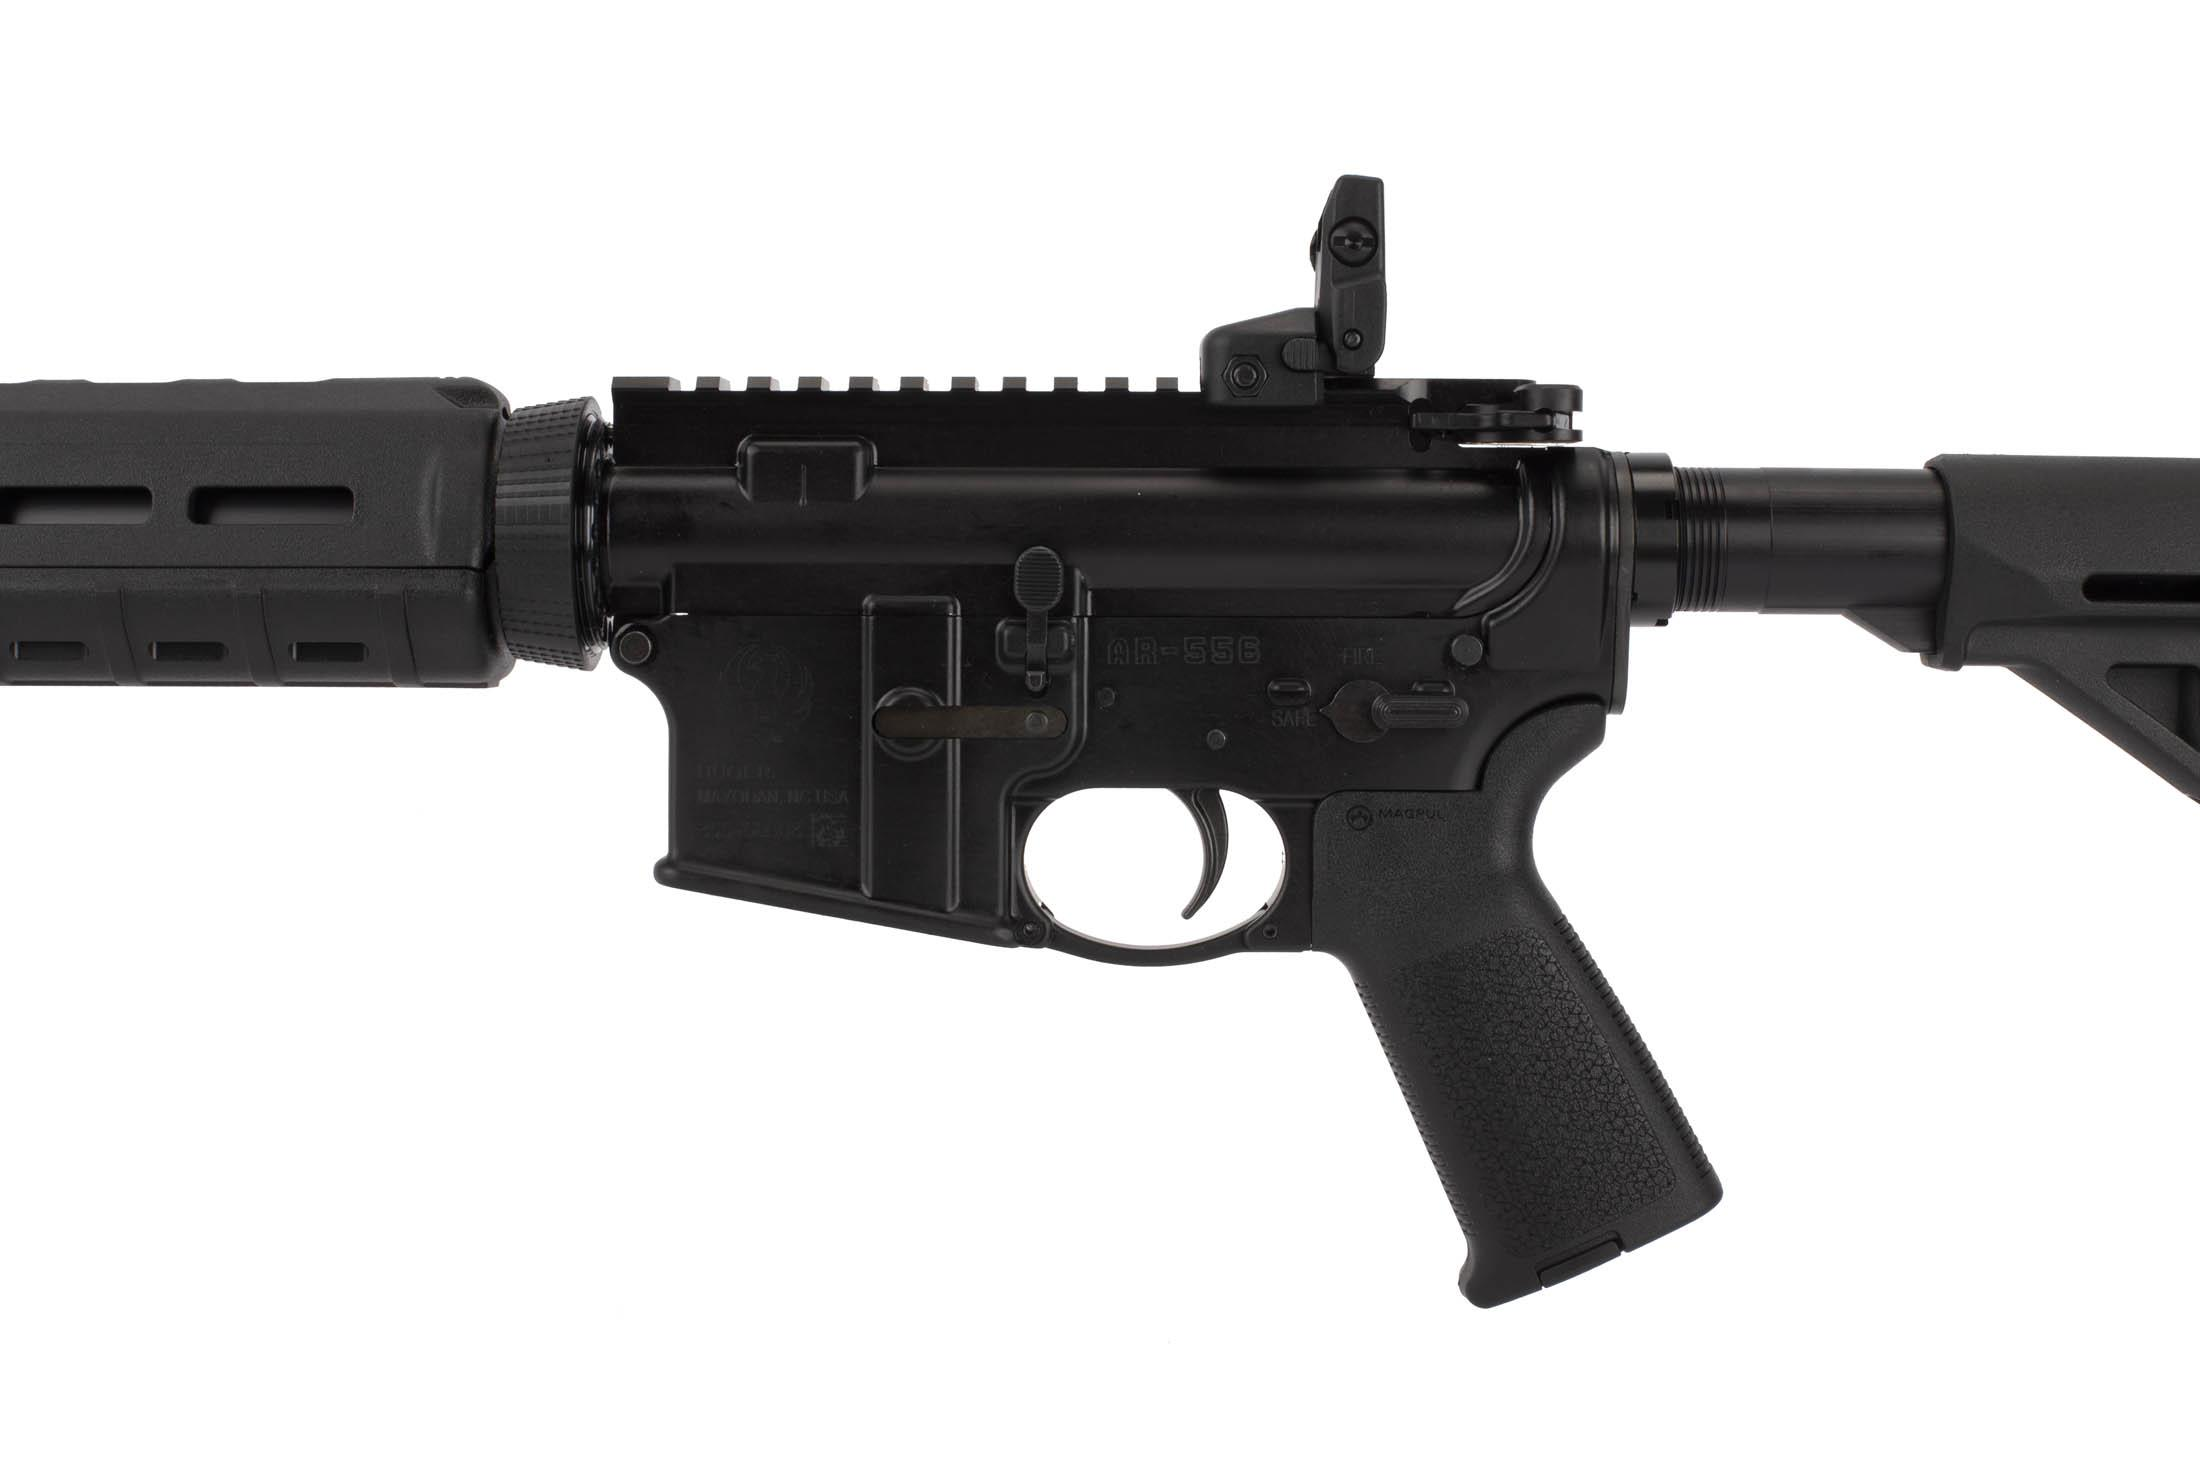 Ruger AR-556 16in AR-15 rifle with MIL-SPEC internals and a winterized glove-friendly trigger guard.